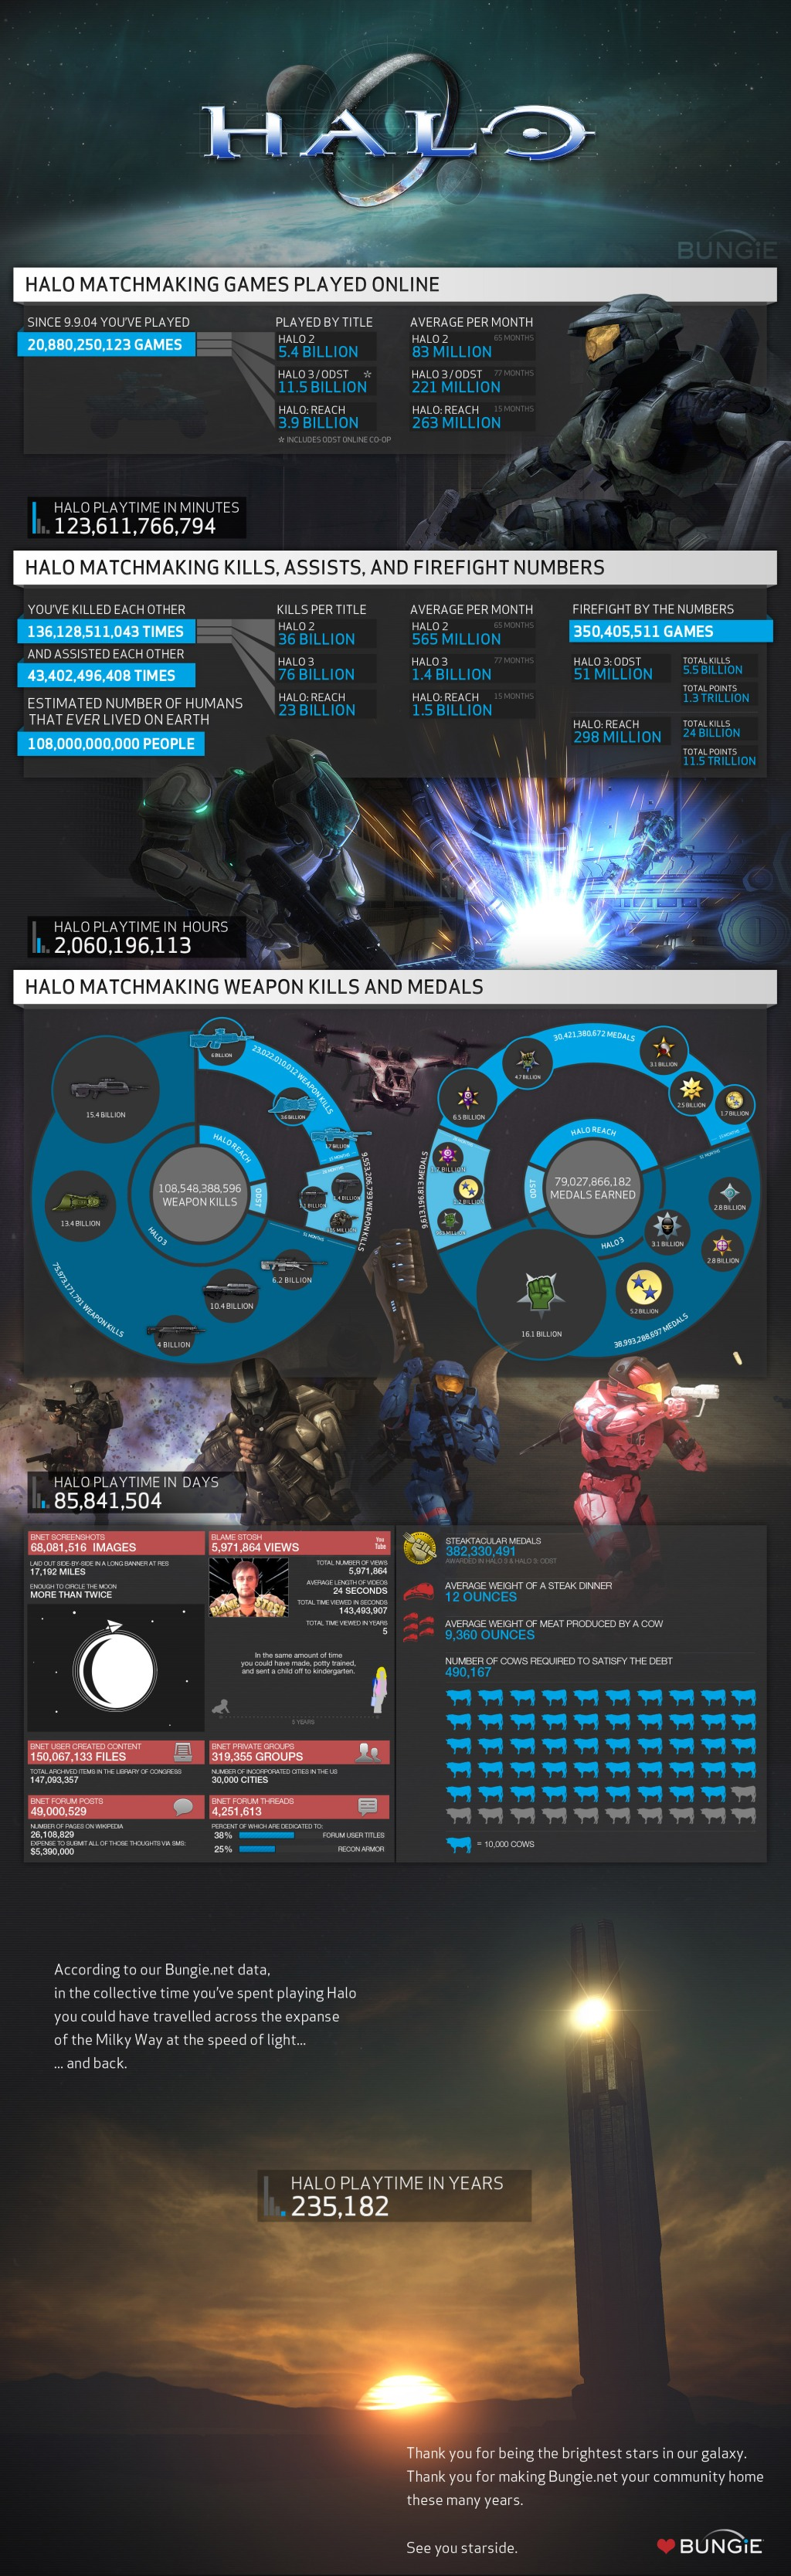 Bungie Halo 3 ODST Reach 4 Stats